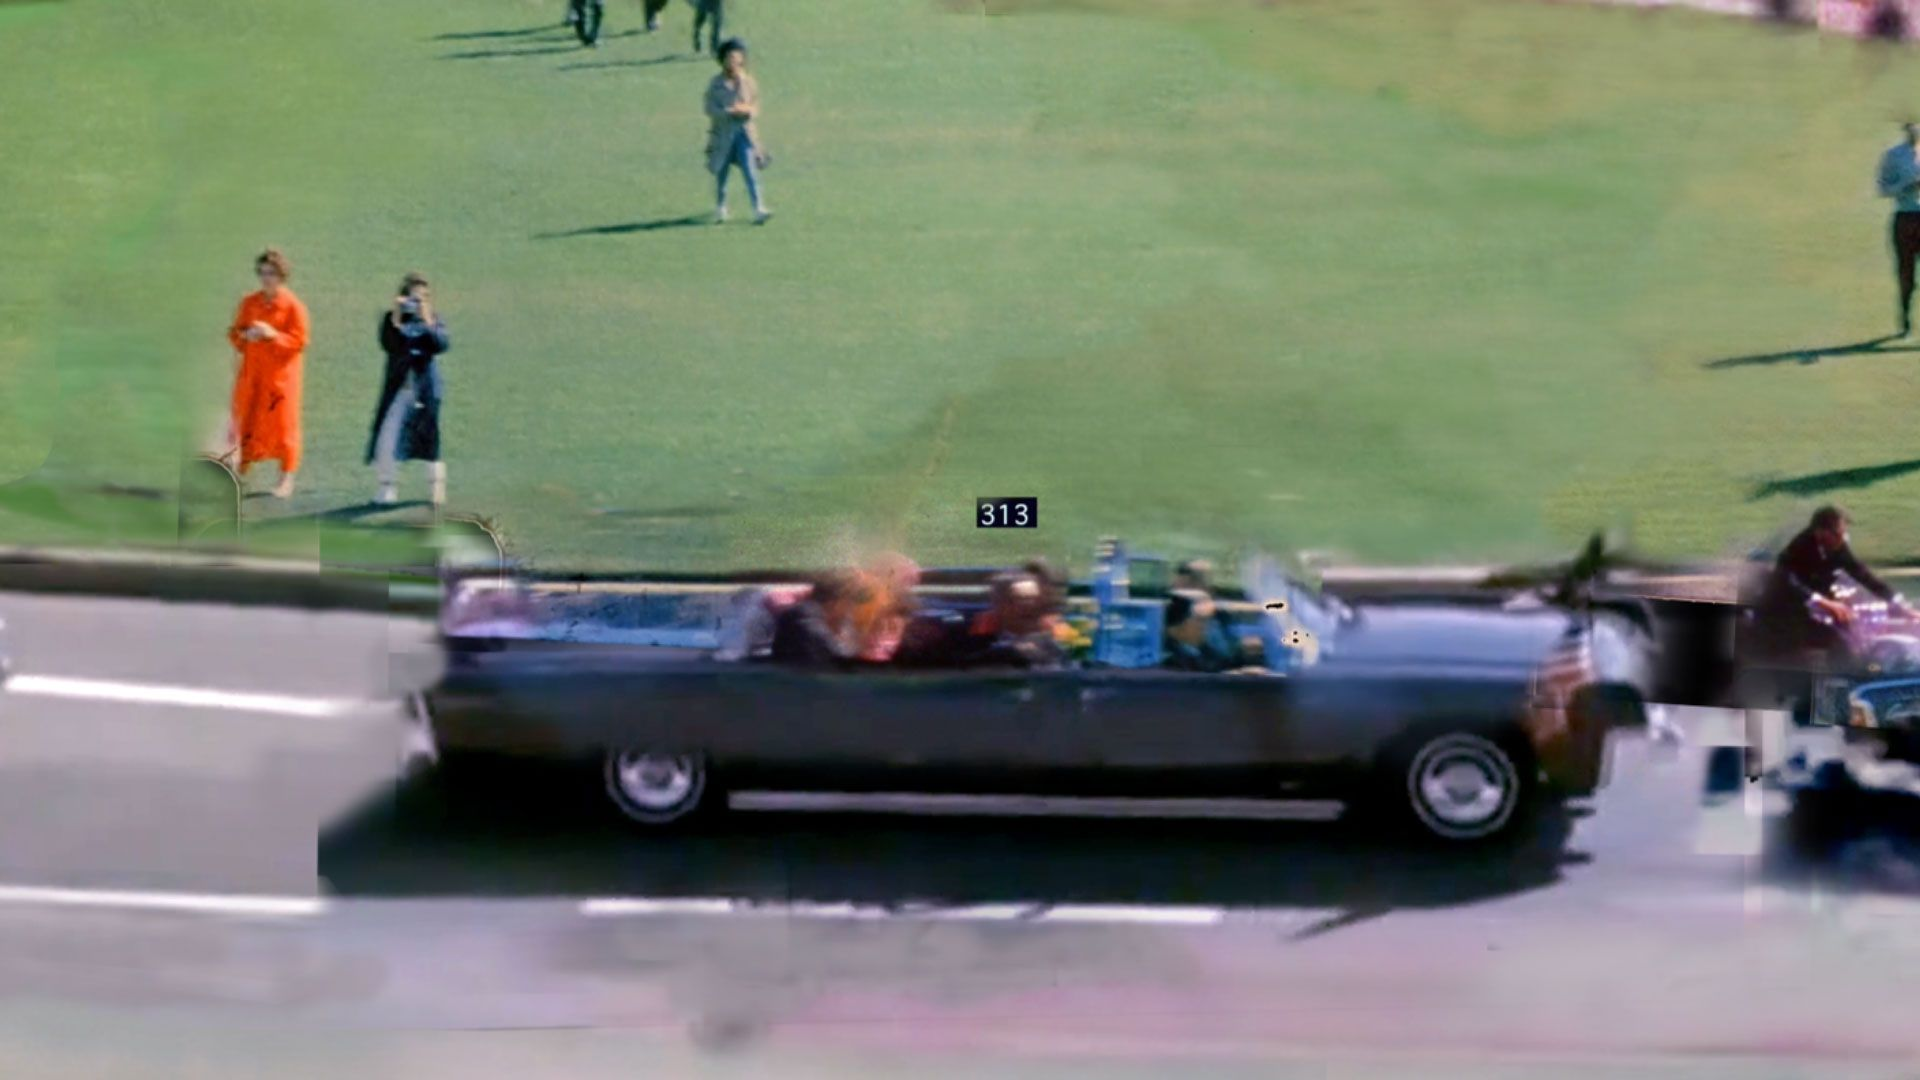 the assassination of john f kennedy frame 313 and the fatal head